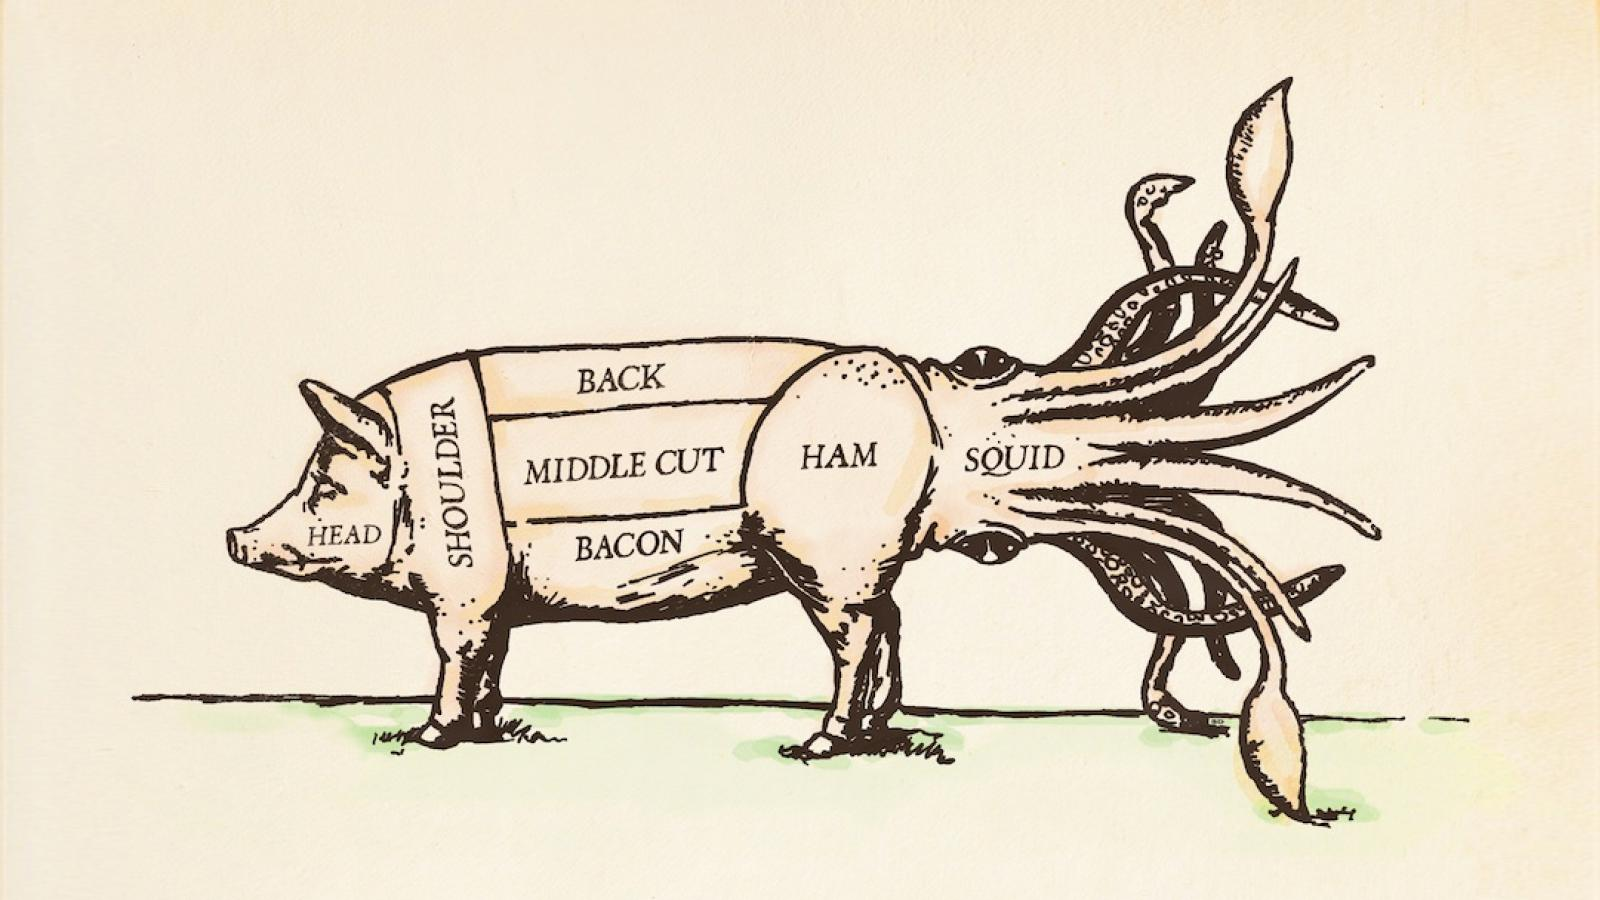 hight resolution of doppelg ngers this american lifeyork pig diagram 19